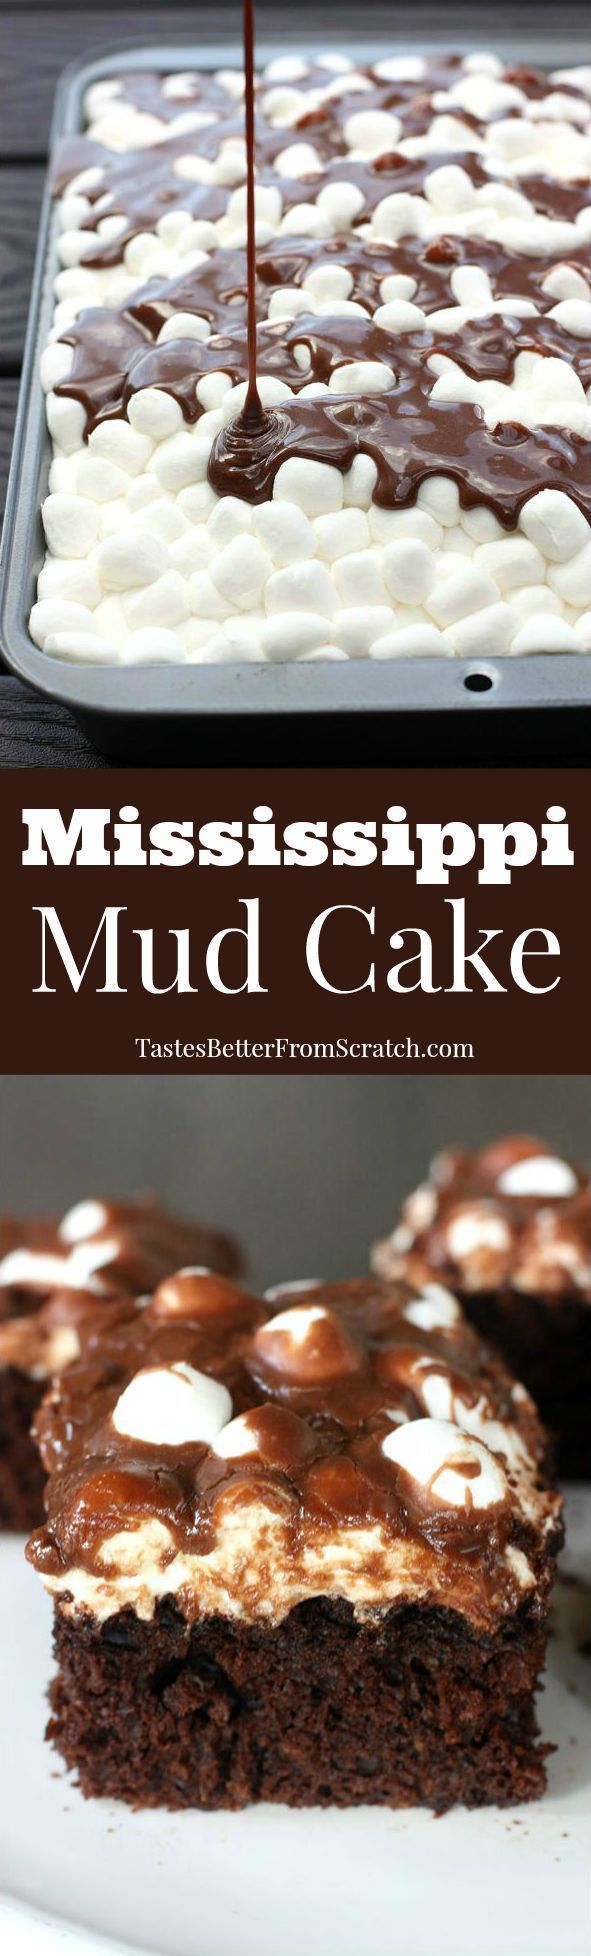 Mississippi Mud Cake–homemade chocolate cake with marshmallows and warm chocolate frosting poured on top! BEST CAKE EVER!